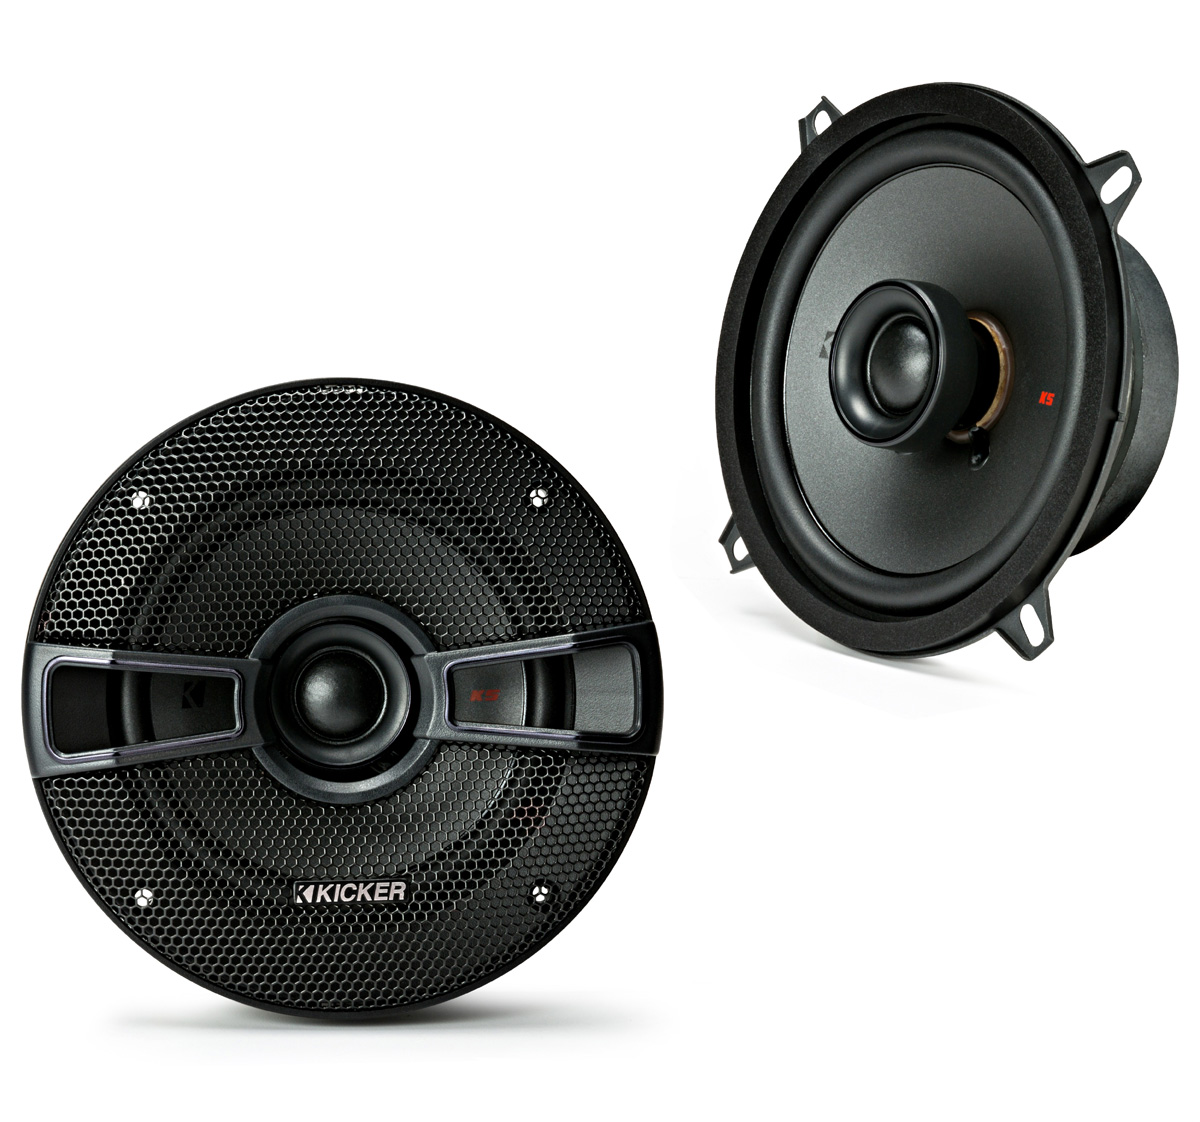 "KICKER 44KSC504 5.25"" (130mm) Coax Spkrs w/.75""(20mm) tweeters, 4ohm, RoHS Compliant"